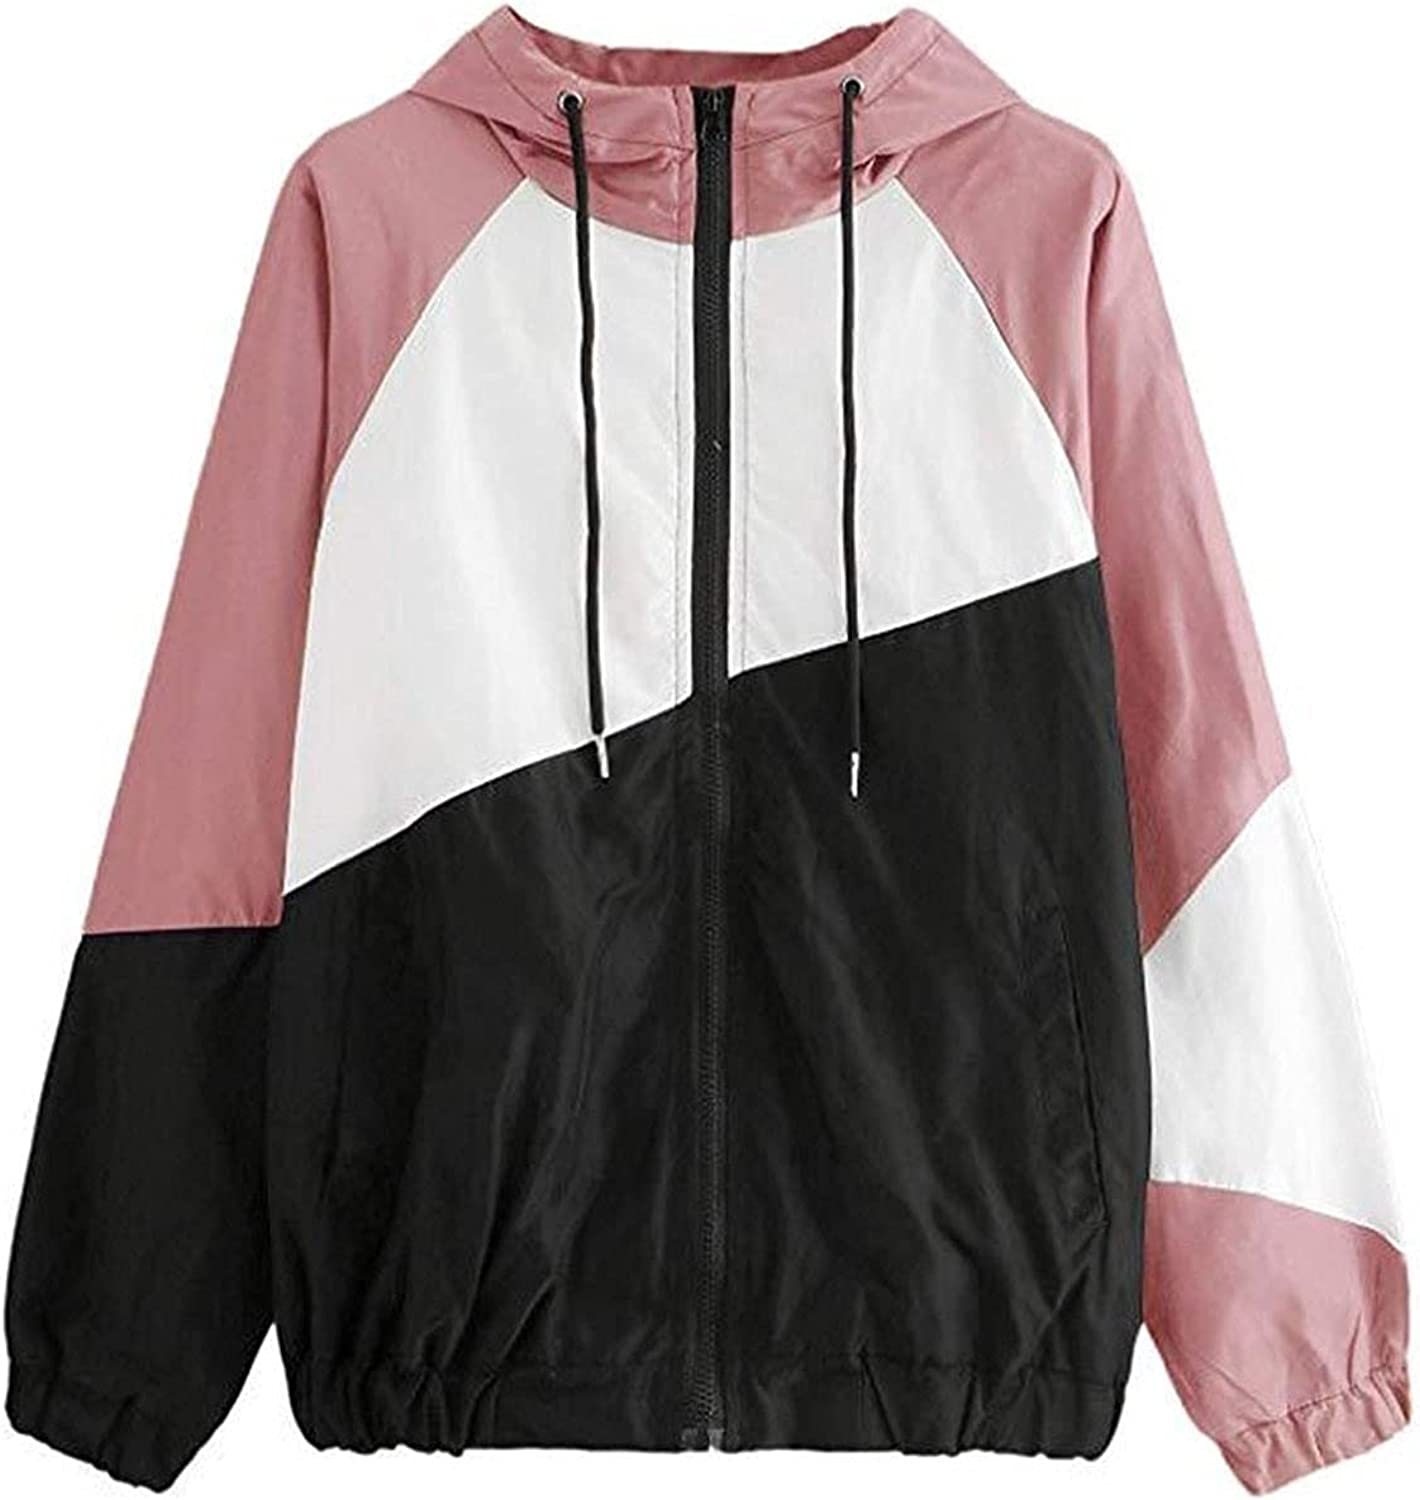 GERsome Women's Sport Coat Long Sleeve Contrast Color Patchwork Thin Skinsuits Hooded Zipper Pockets Sportswear Coat Fashion